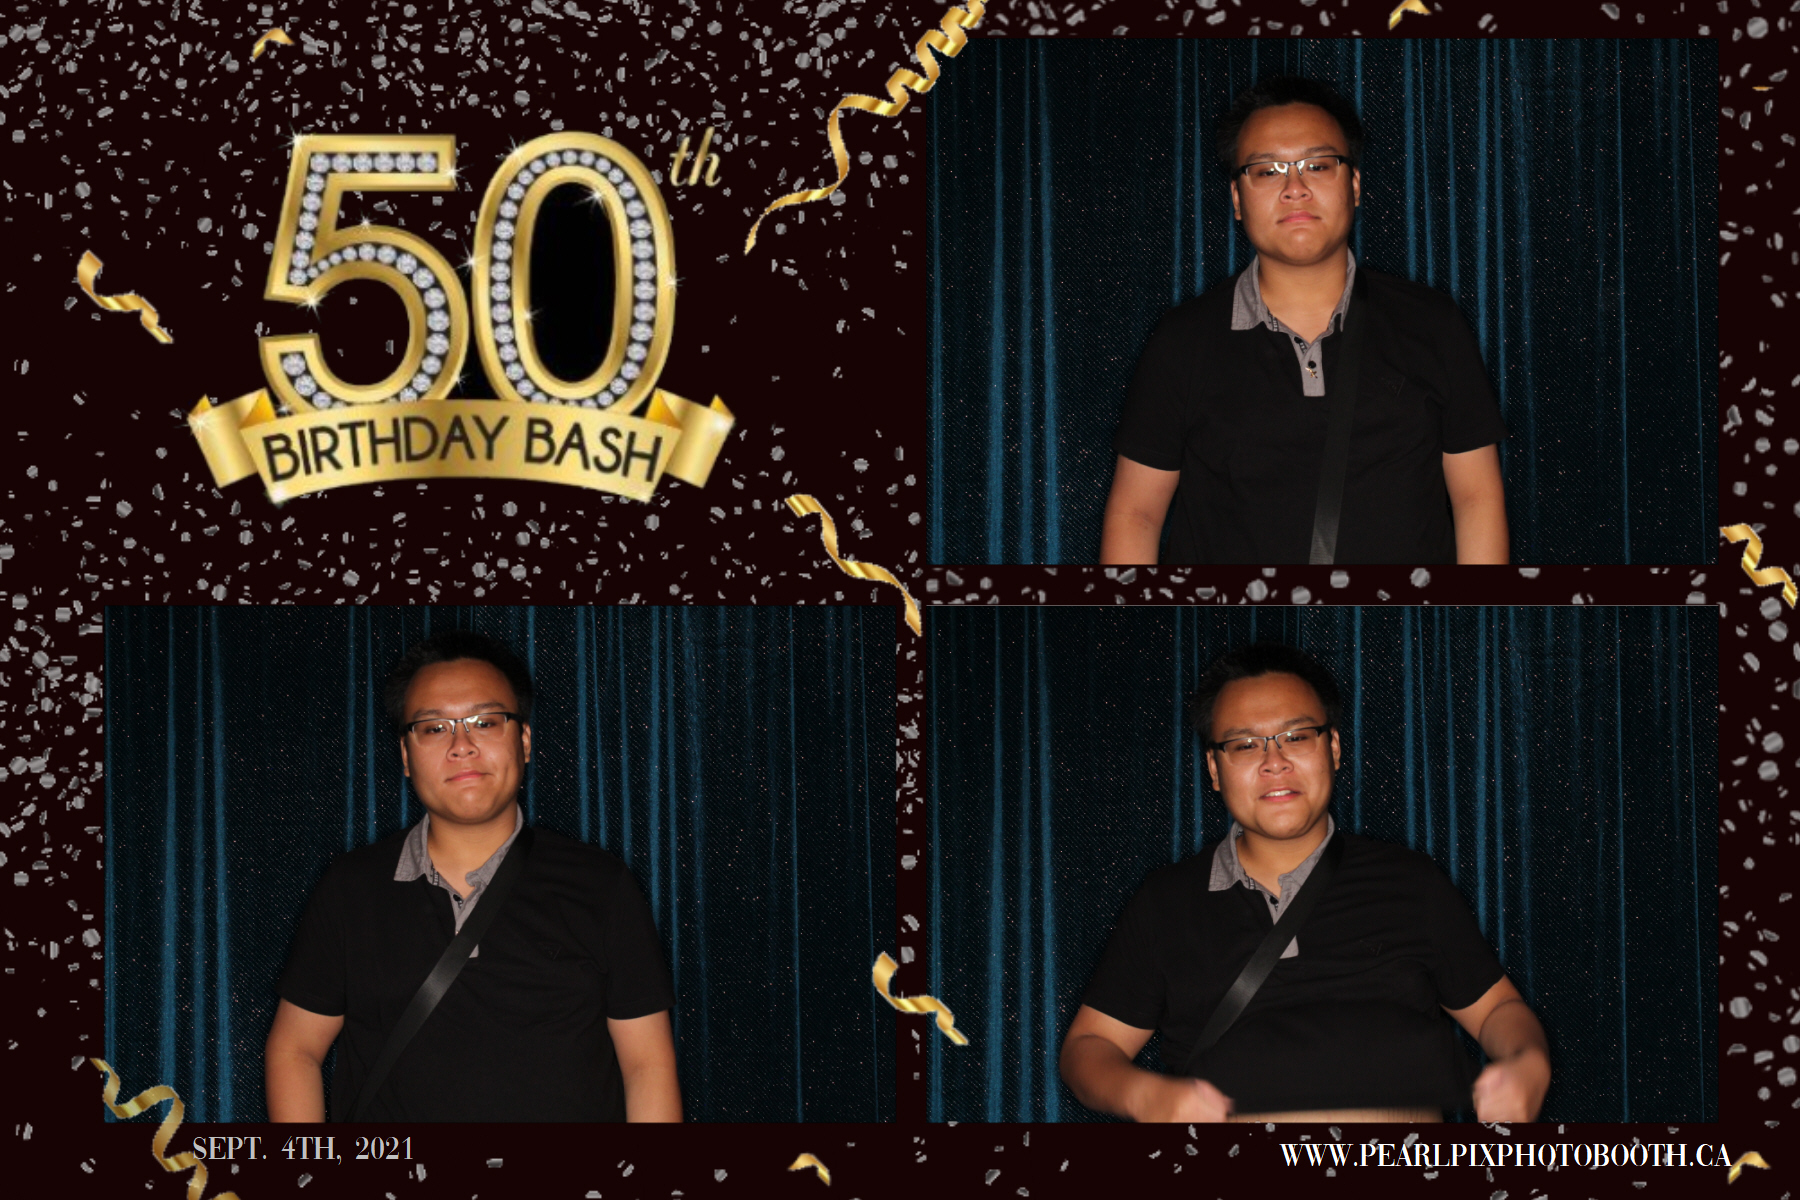 Peter_s 50th Bday_13